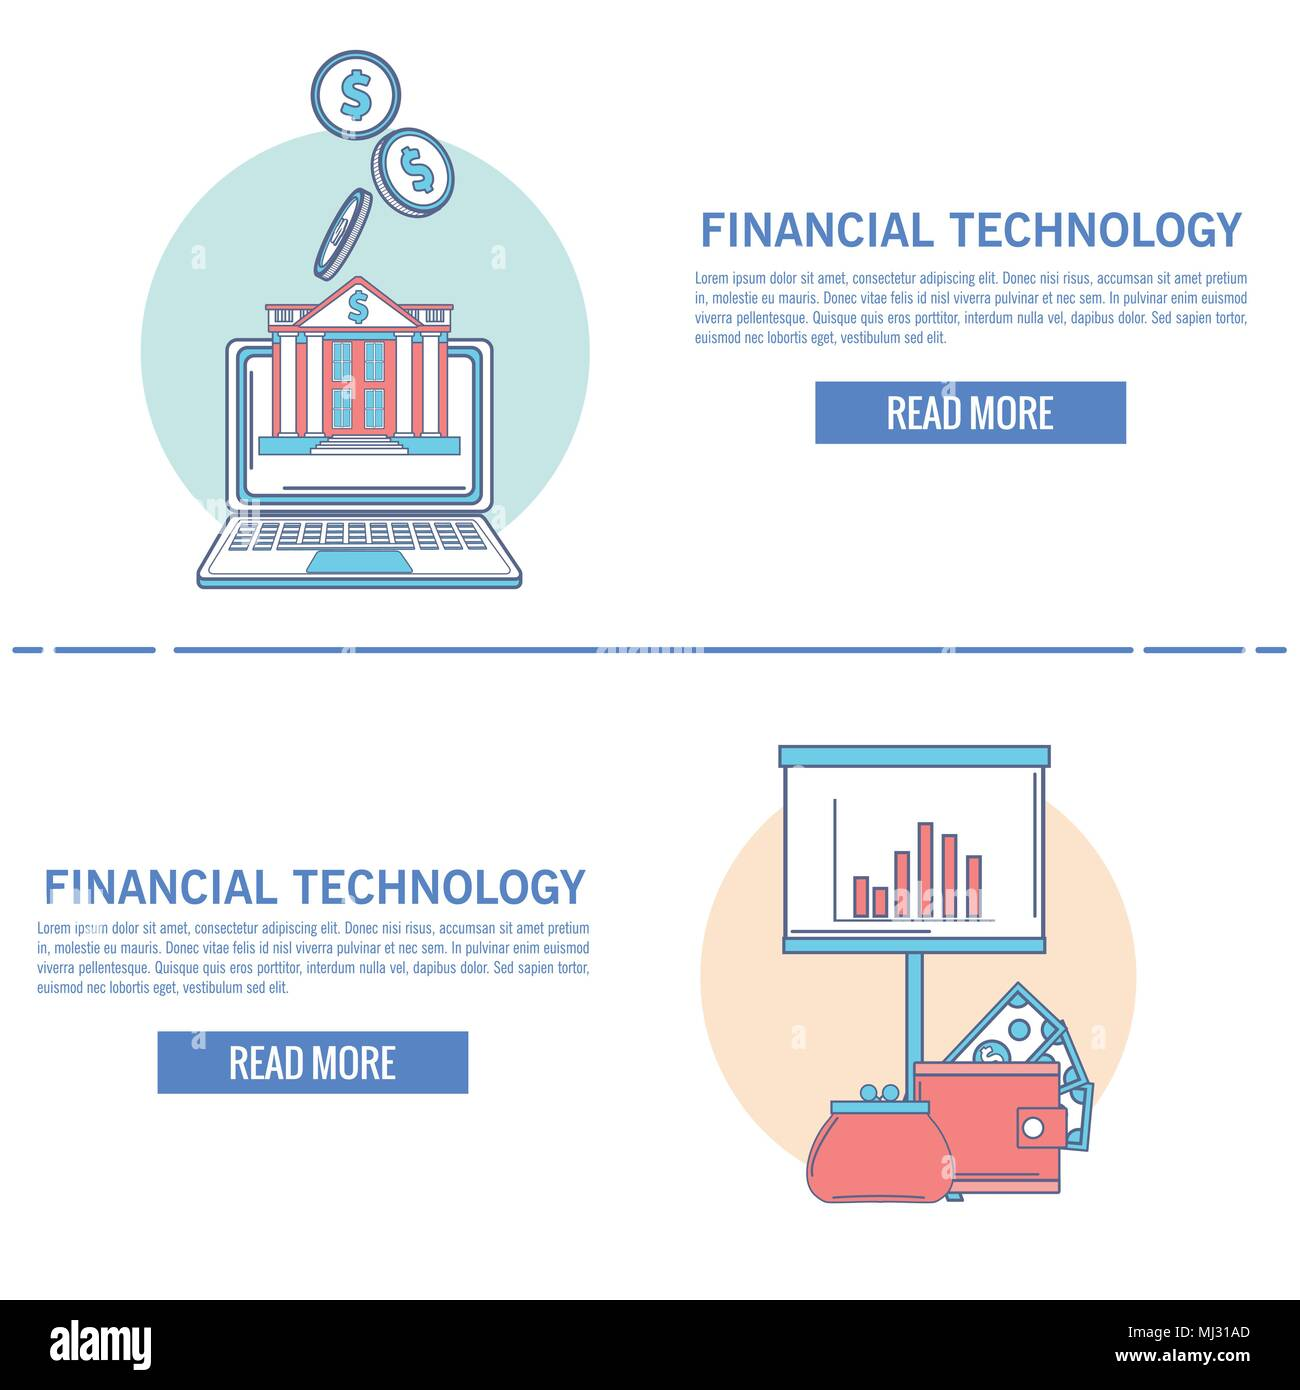 Financial technology infographic - Stock Vector